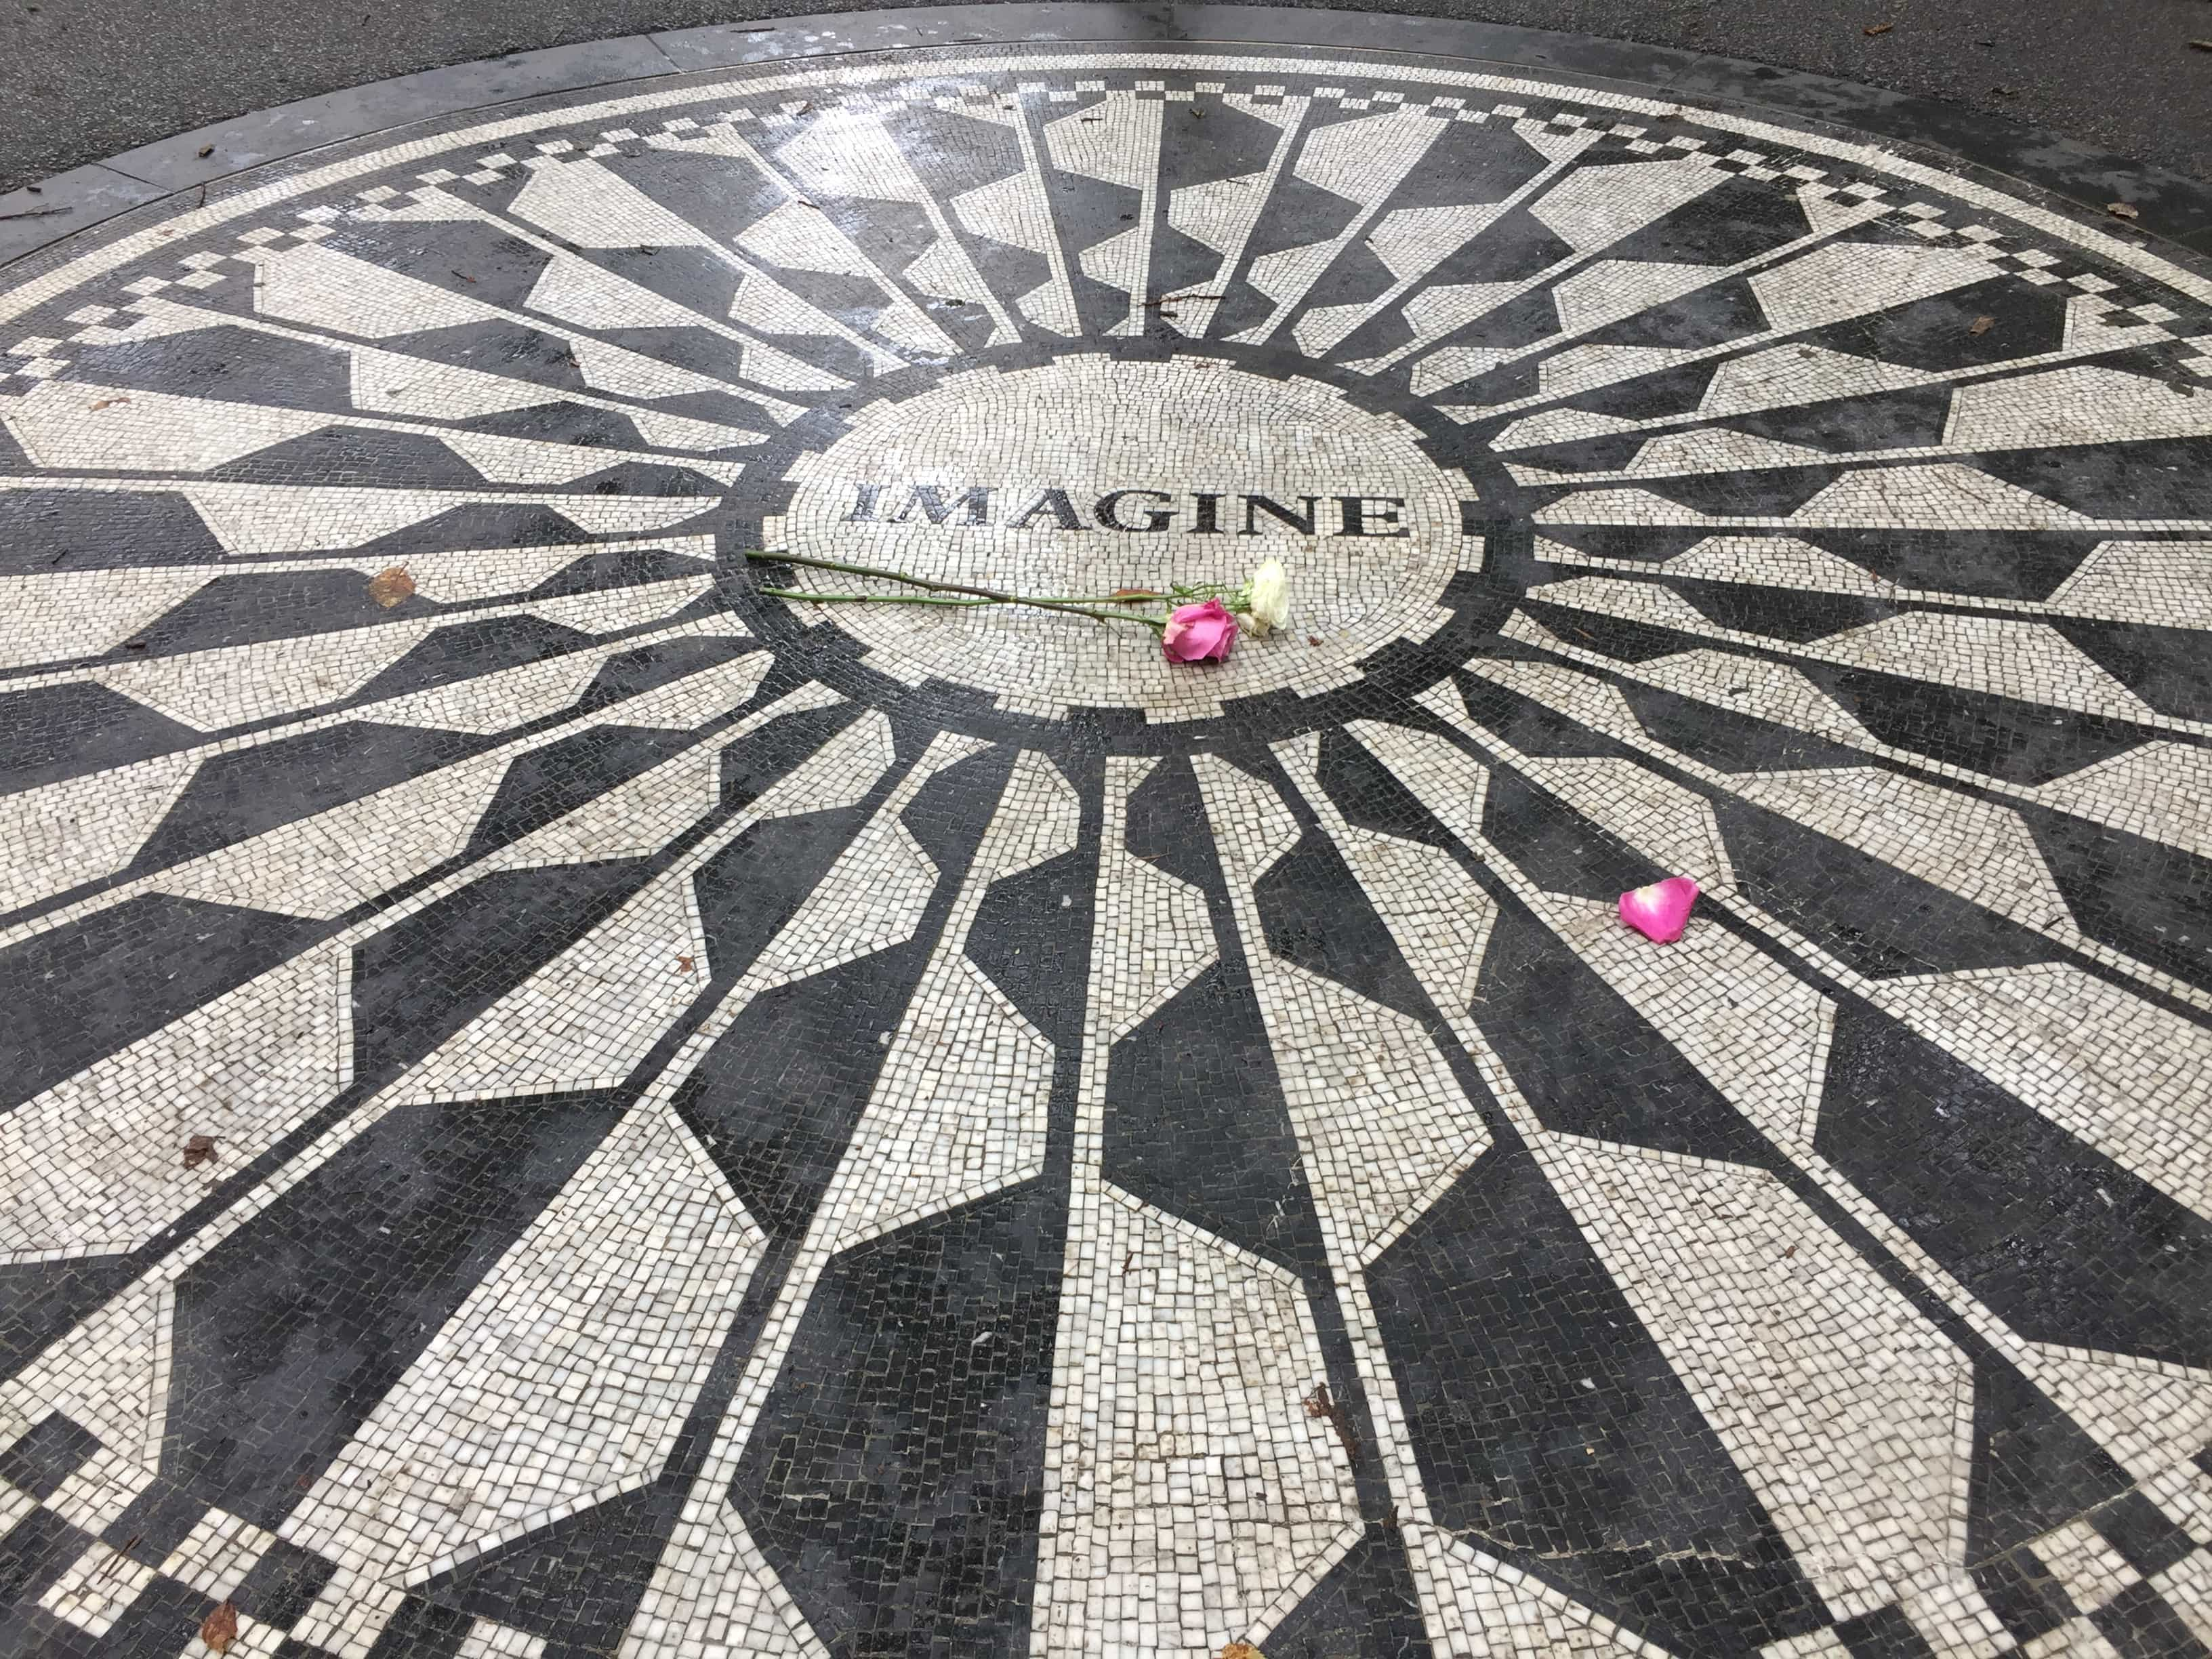 Imagine mosaic in Strawberry Fields, Central Park